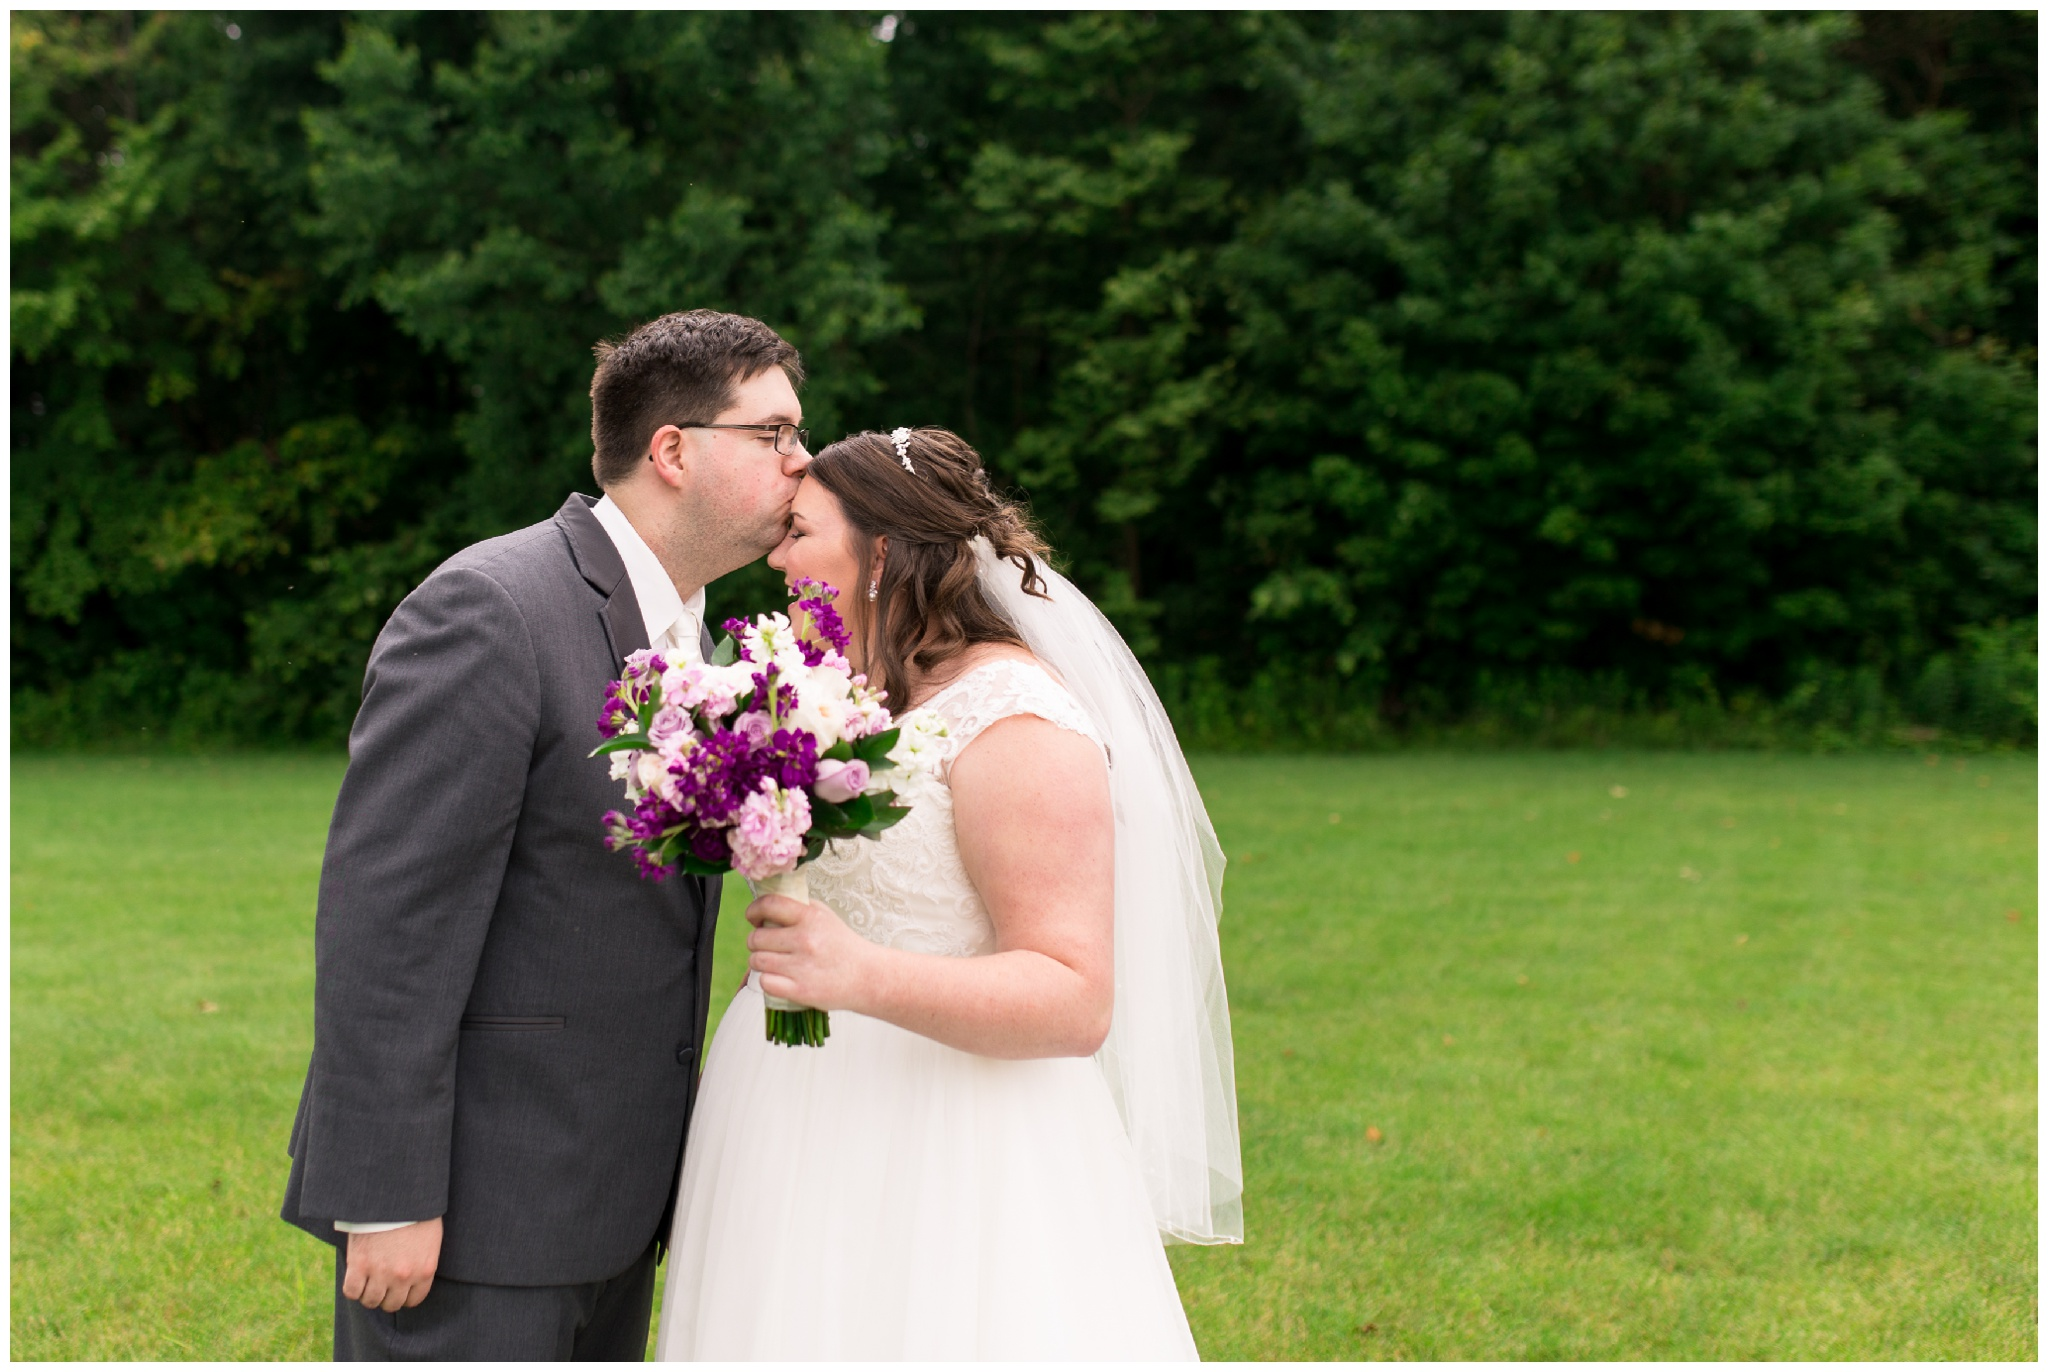 groom kisses bride's forehead before wedding at Crossroads Community Church in Kokomo Indiana